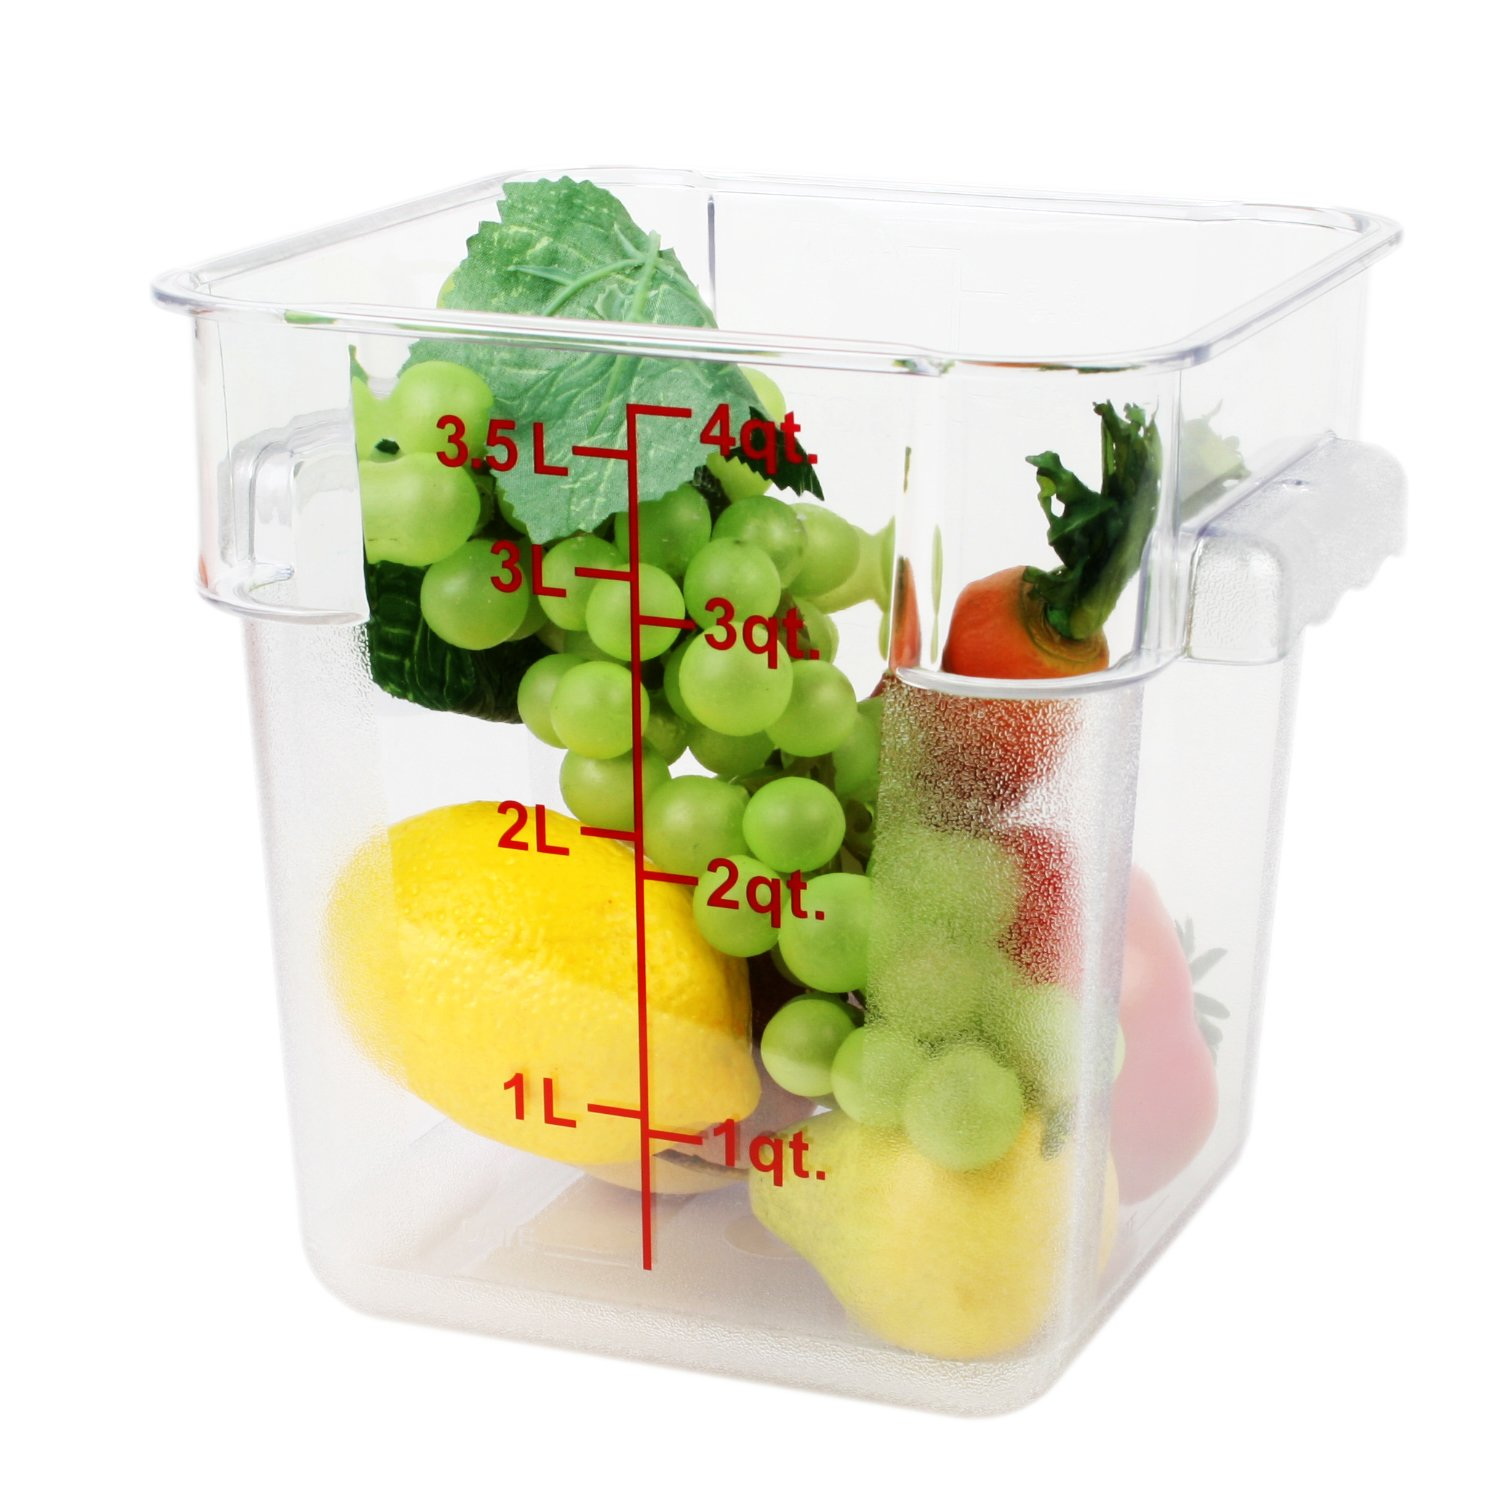 Excellante 4-Quart Polycarbonate Square Food Storage Containers, Clear by Excellant (Image #2)